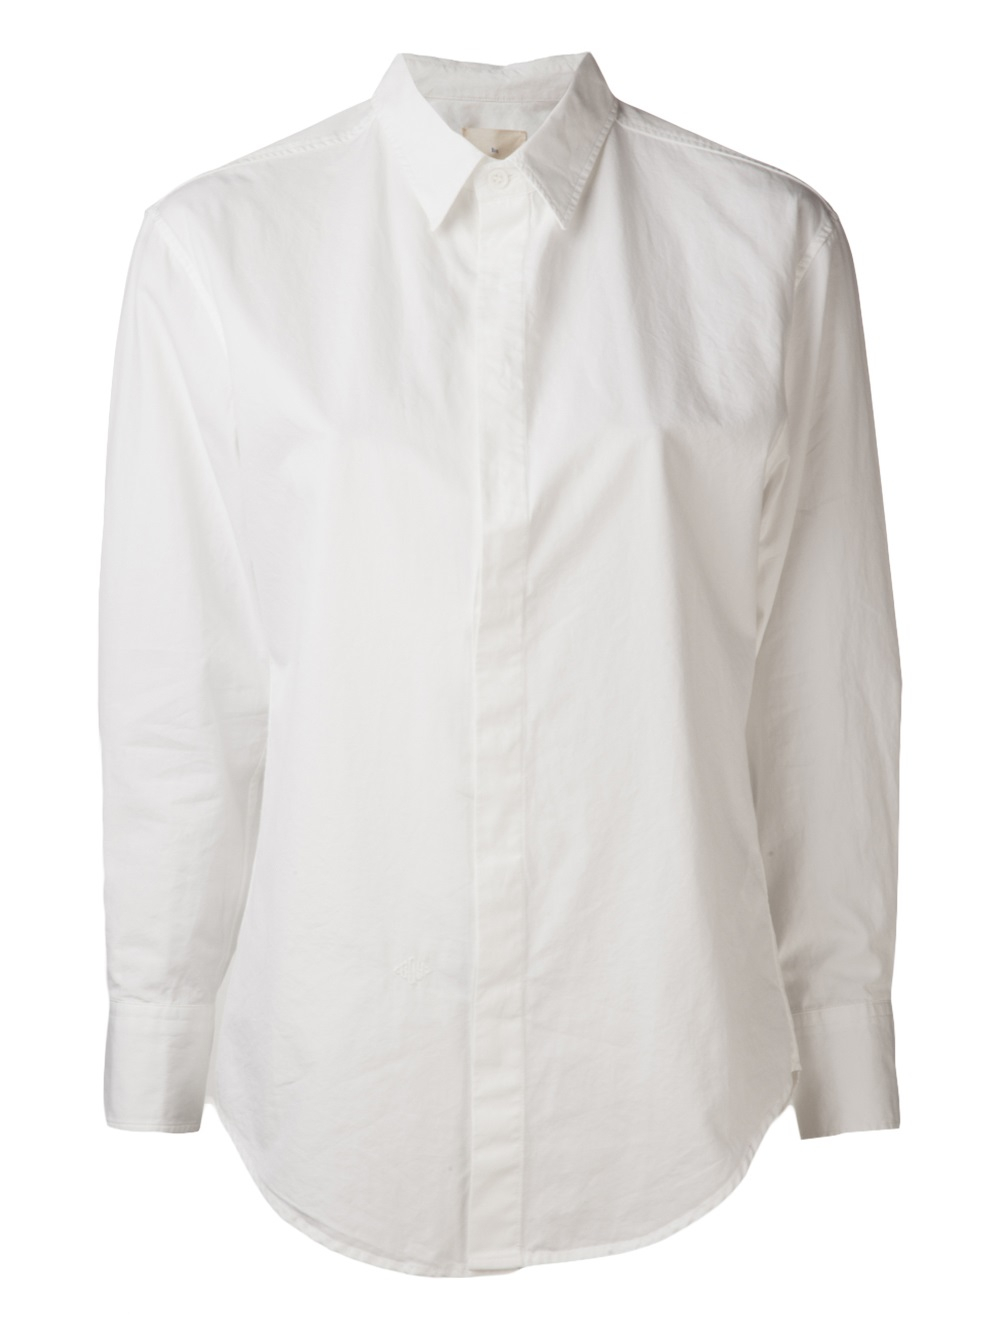 4d7e53d4afdef Lyst - Boy by Band of Outsiders Classic Collar Monogram Shirt in White